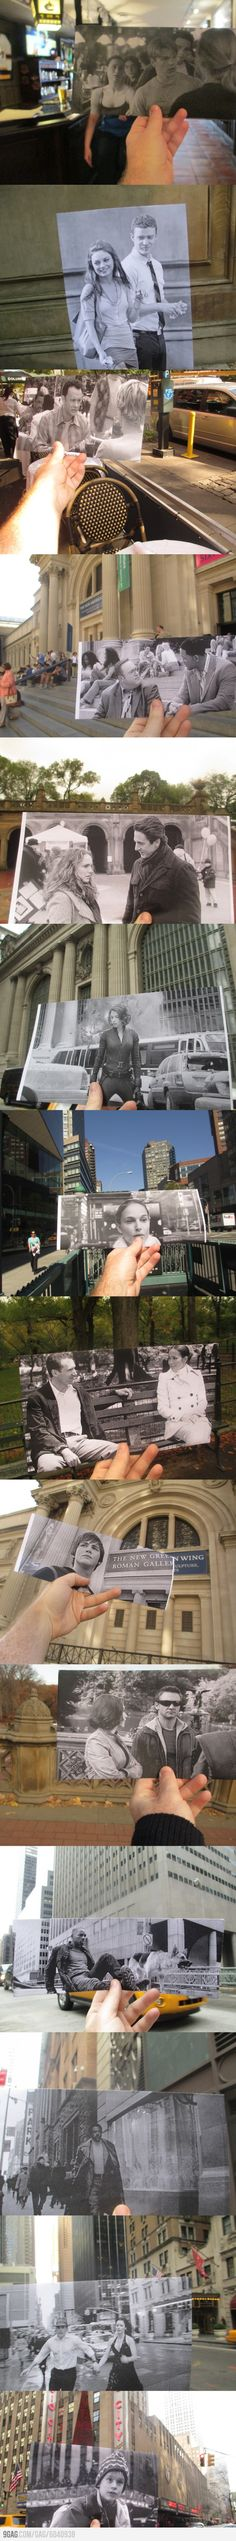 Cool~Lining up still photos from movies with the actual locations. Really like the idea!